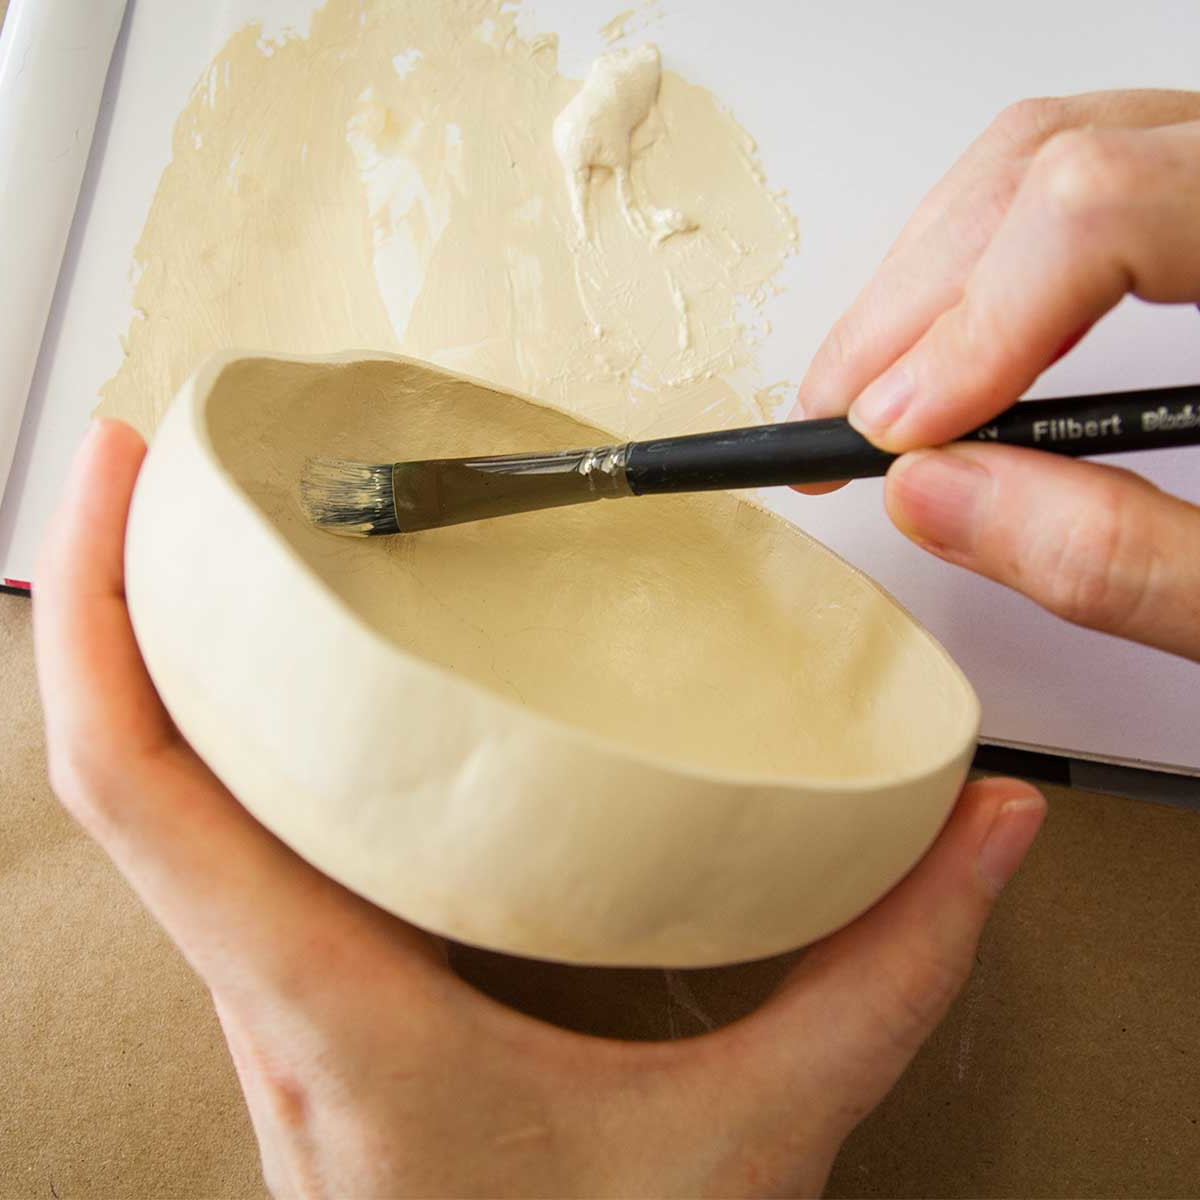 Photo of bowl being painted